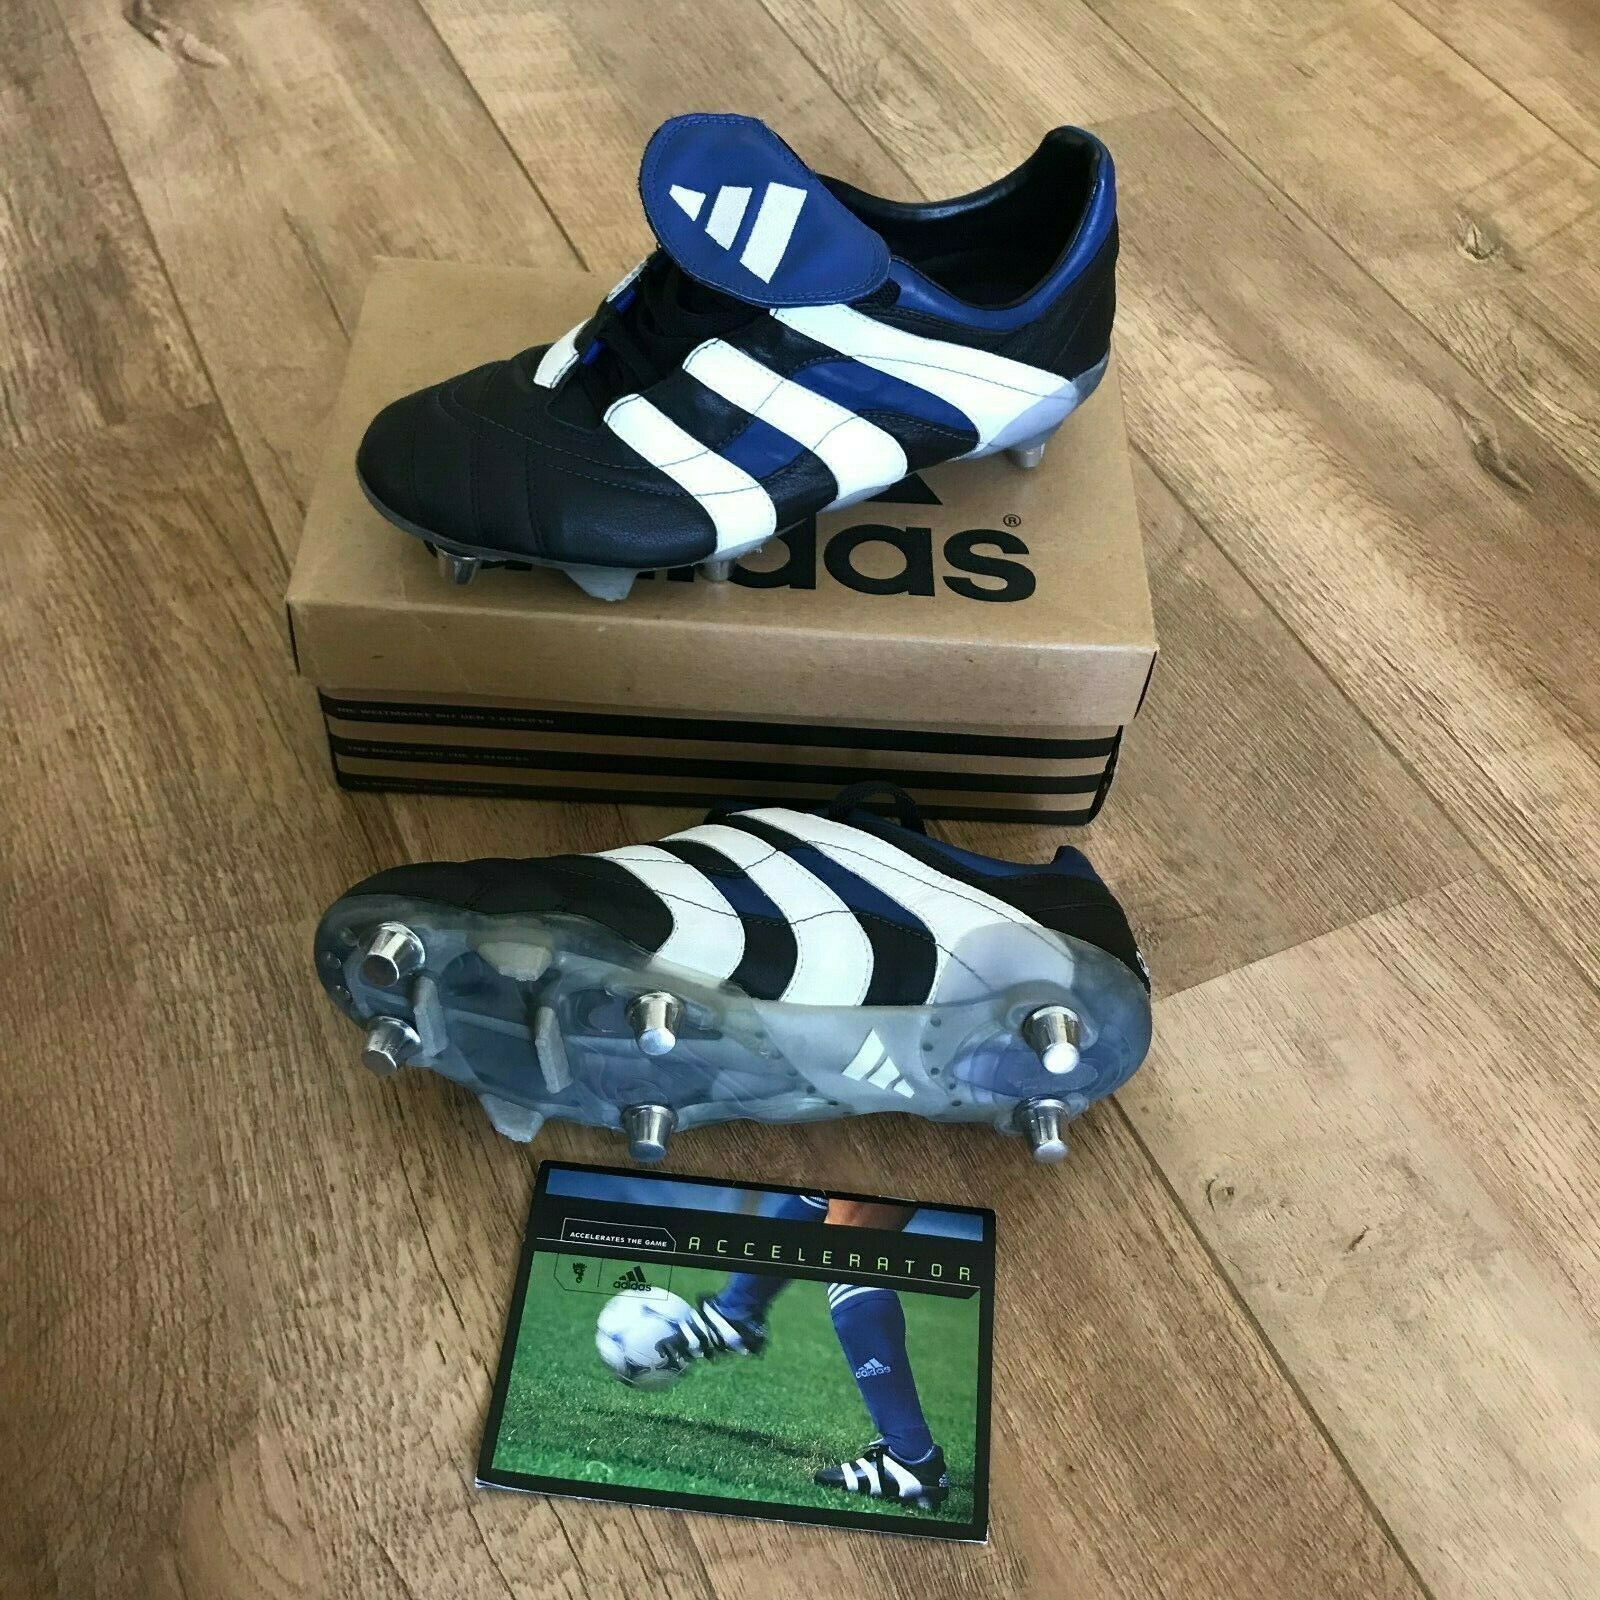 ADIDAS Prossoator ACCELERATORE SG US 8 MANIA assoluto powerswere Touch 1998